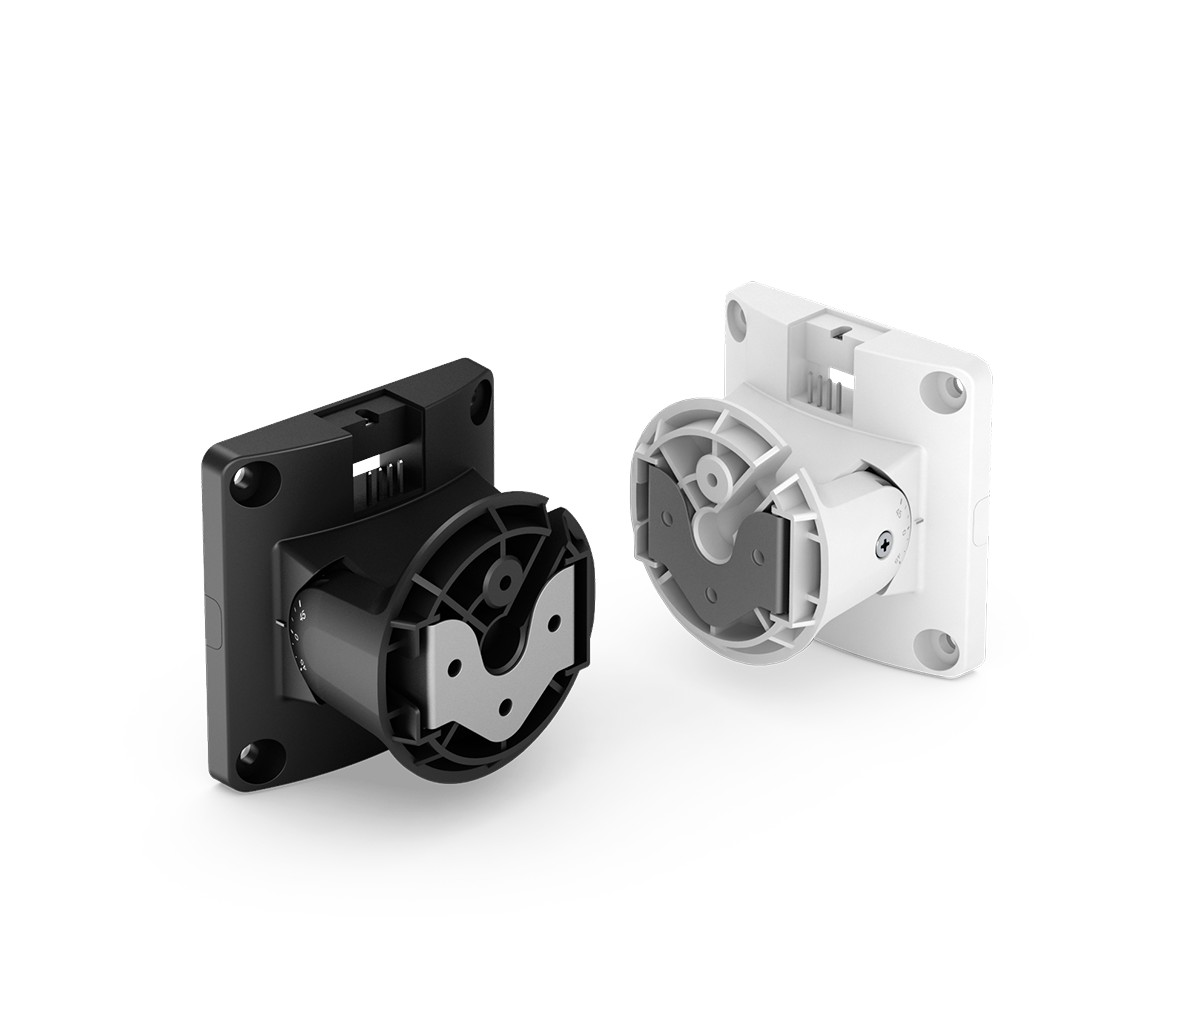 Wall-mount bracket assembly (single)